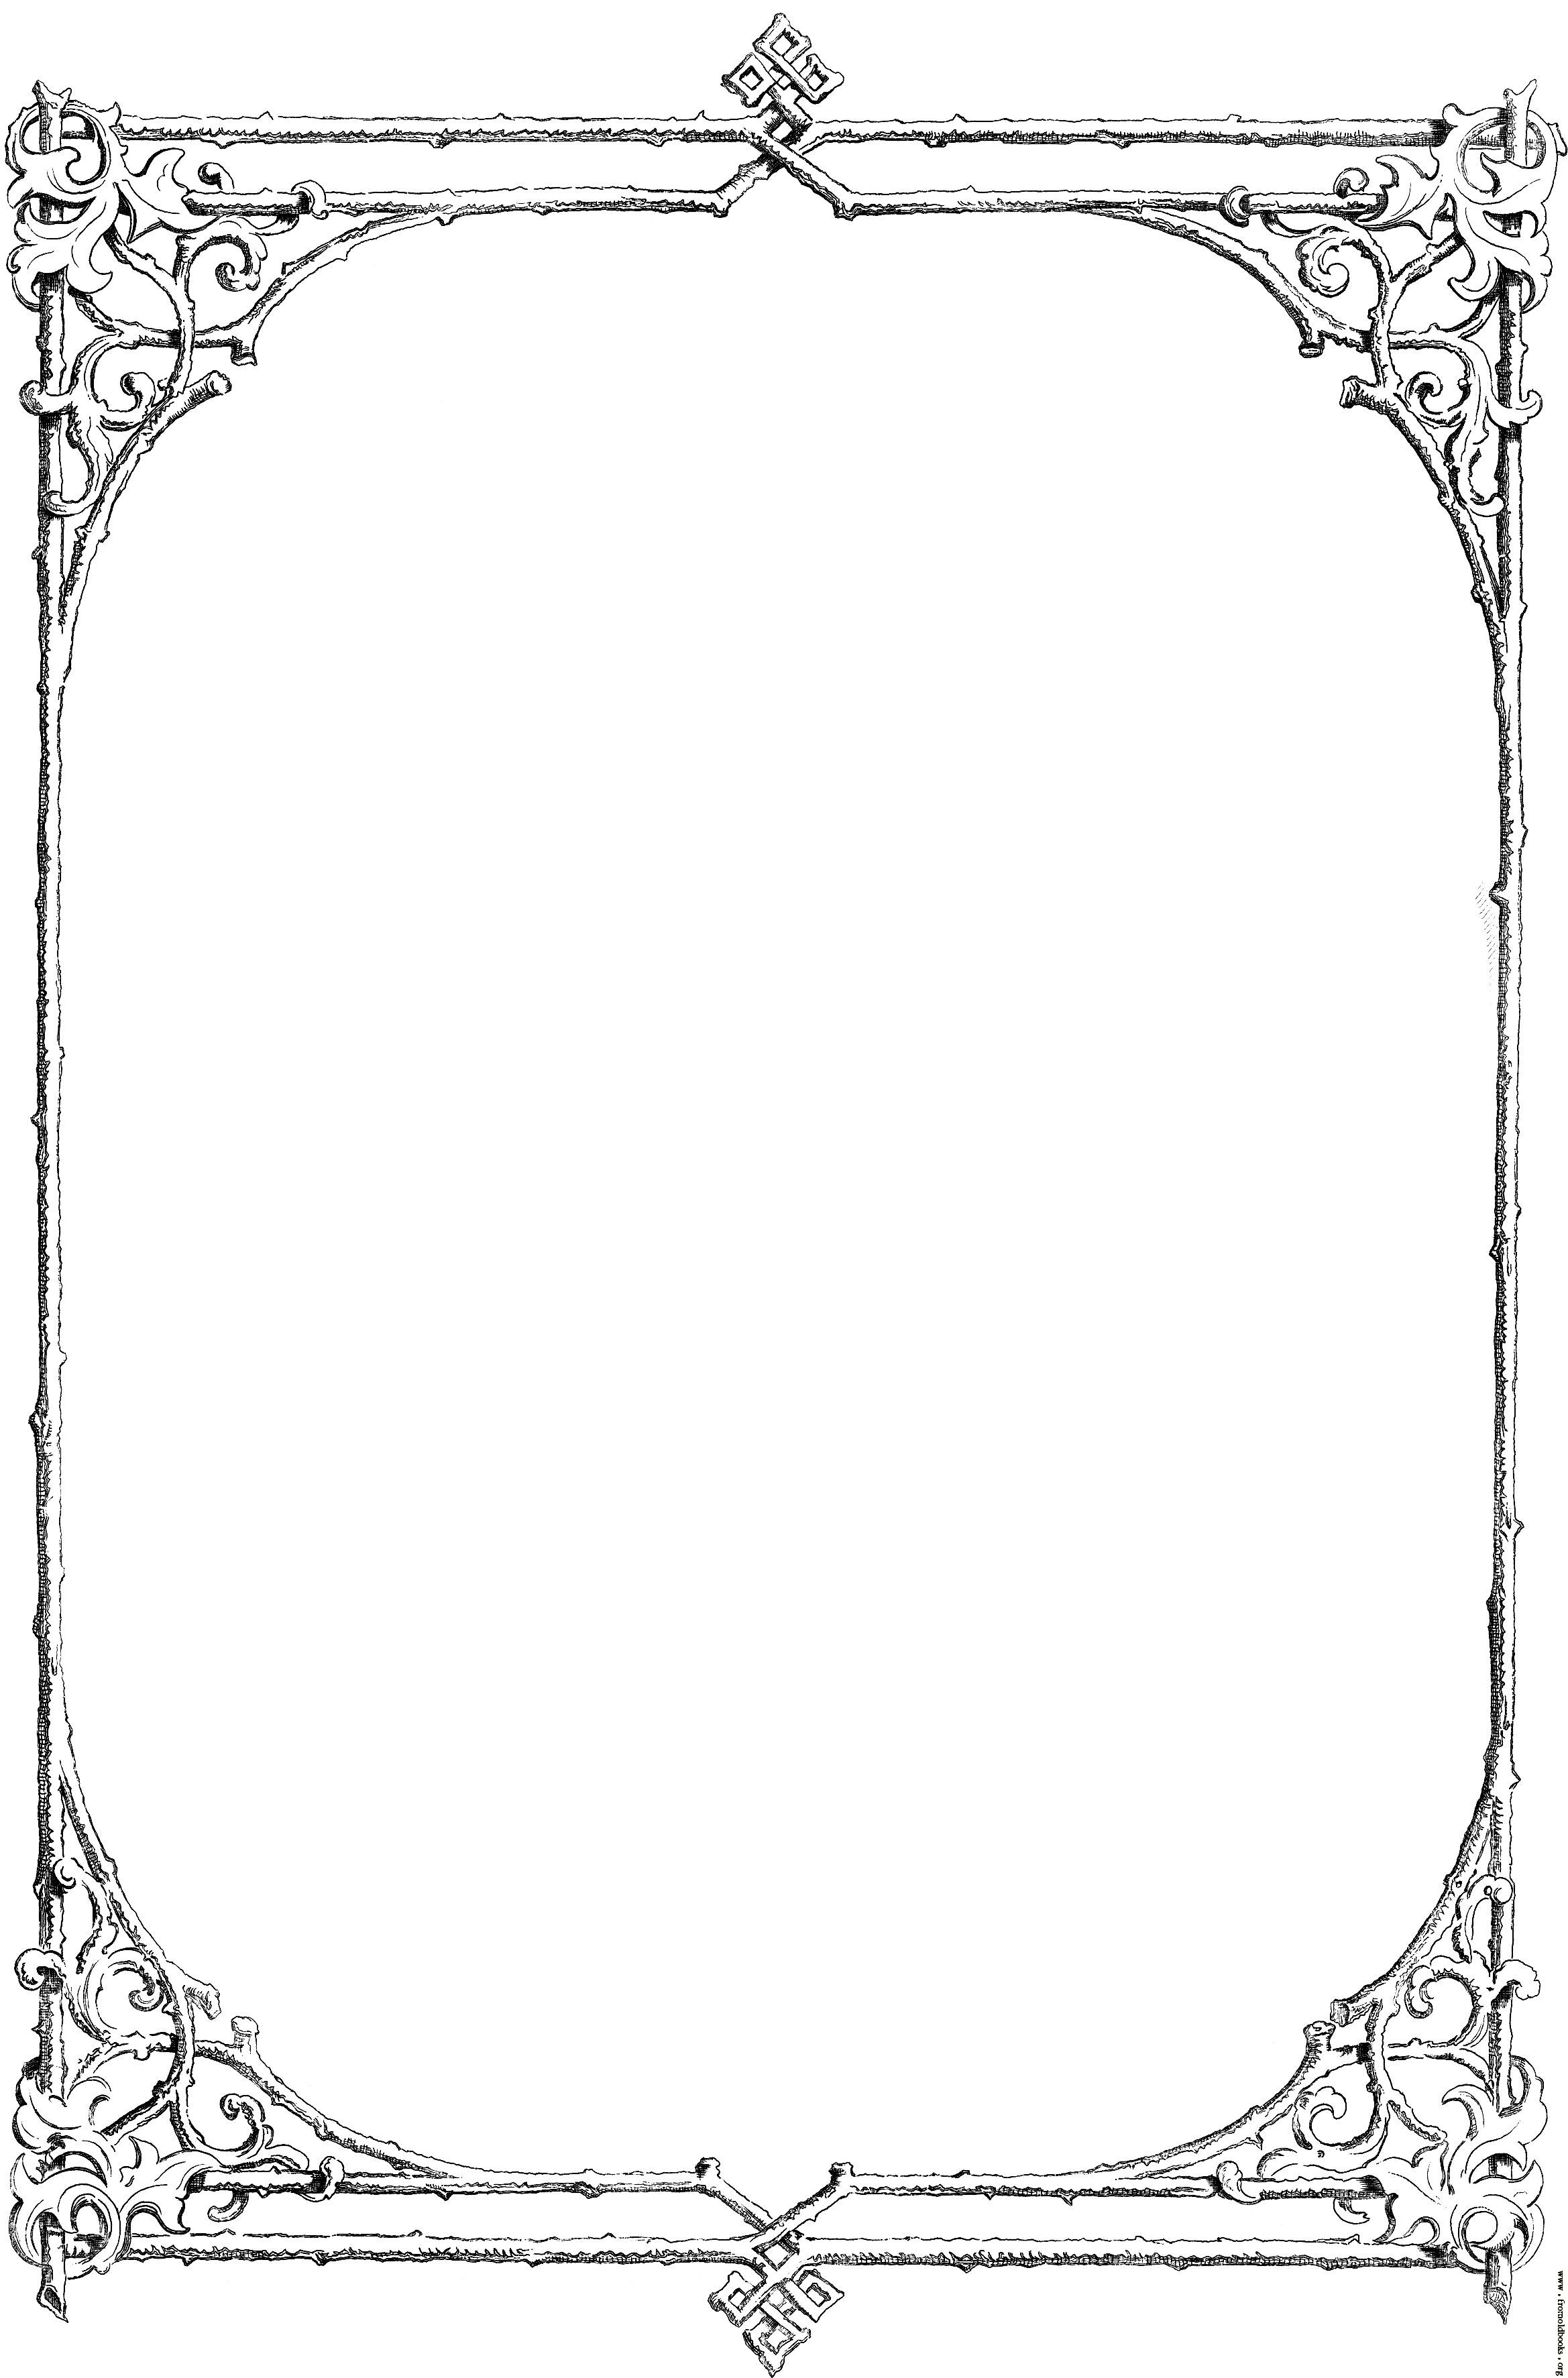 Old Letter clipart cover page Free border of and art: